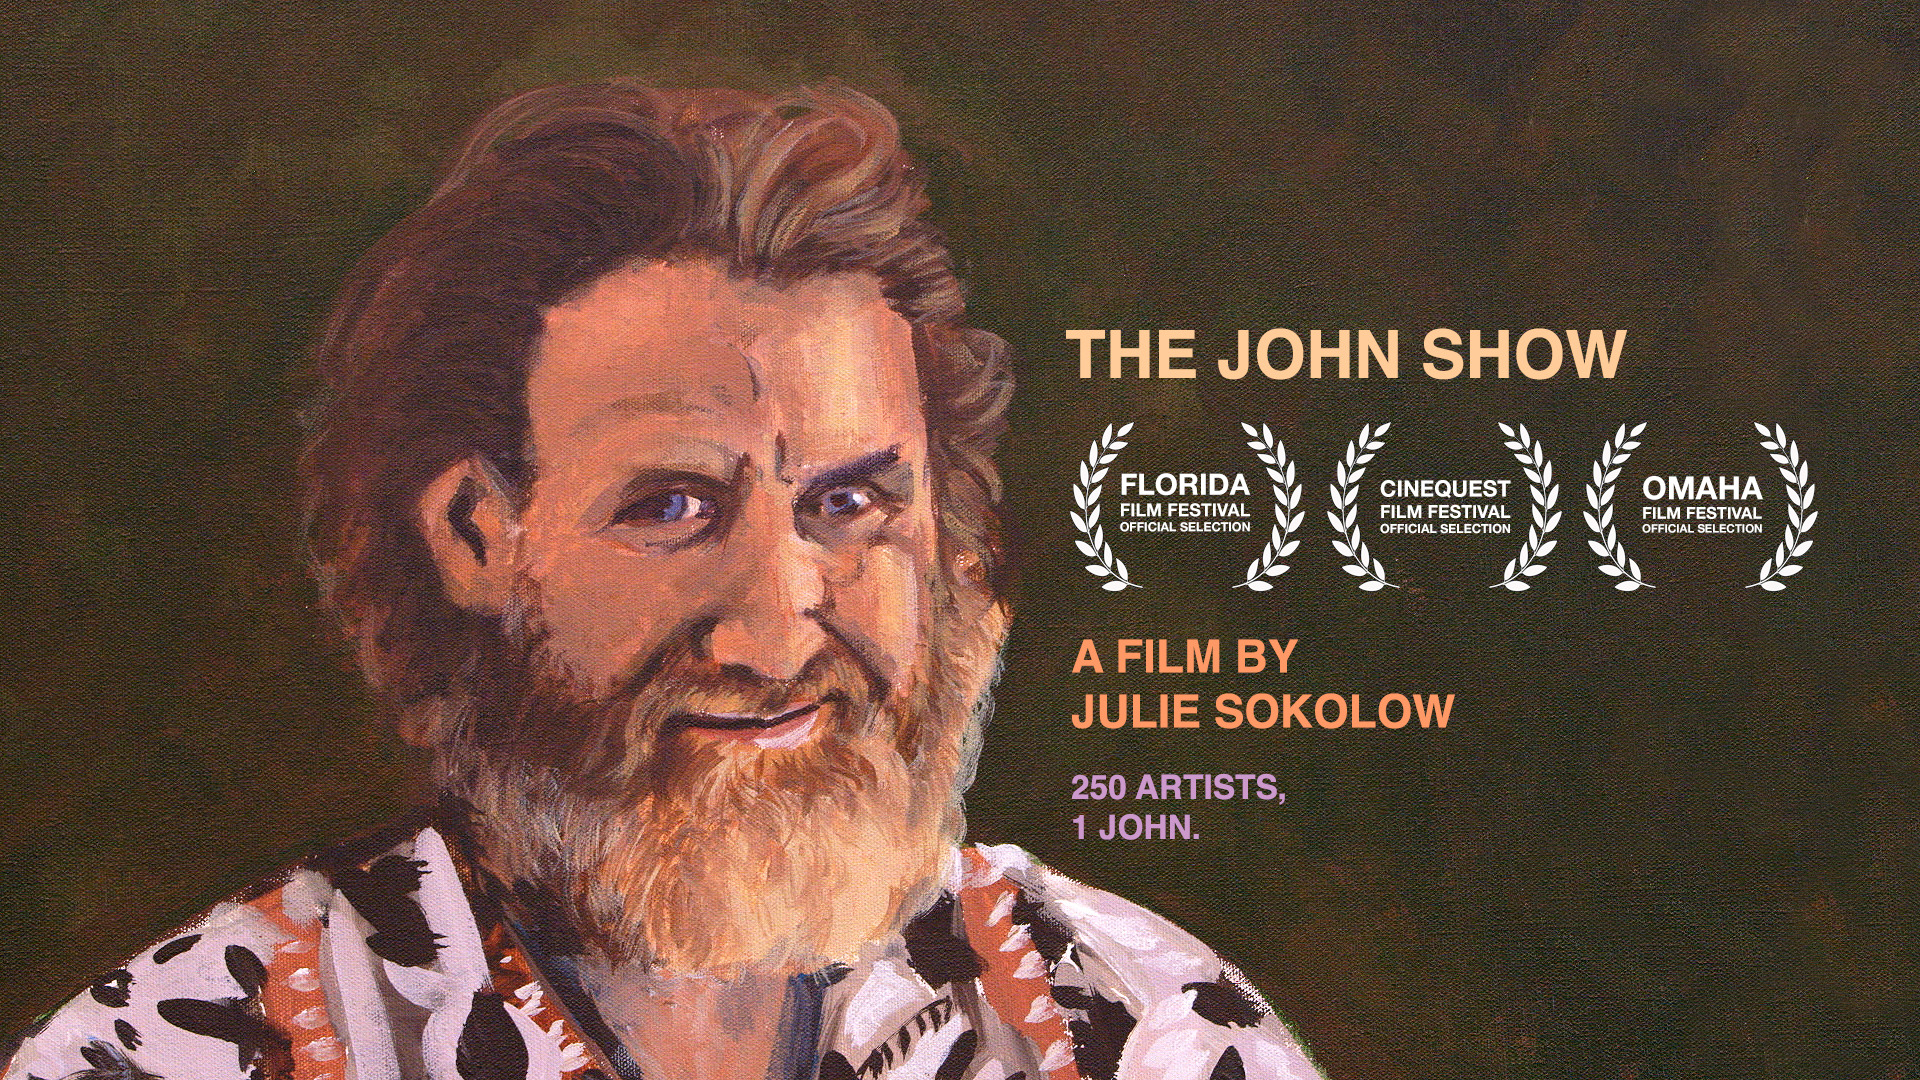 The John Show. Image courtesy of Julie Sokolow.